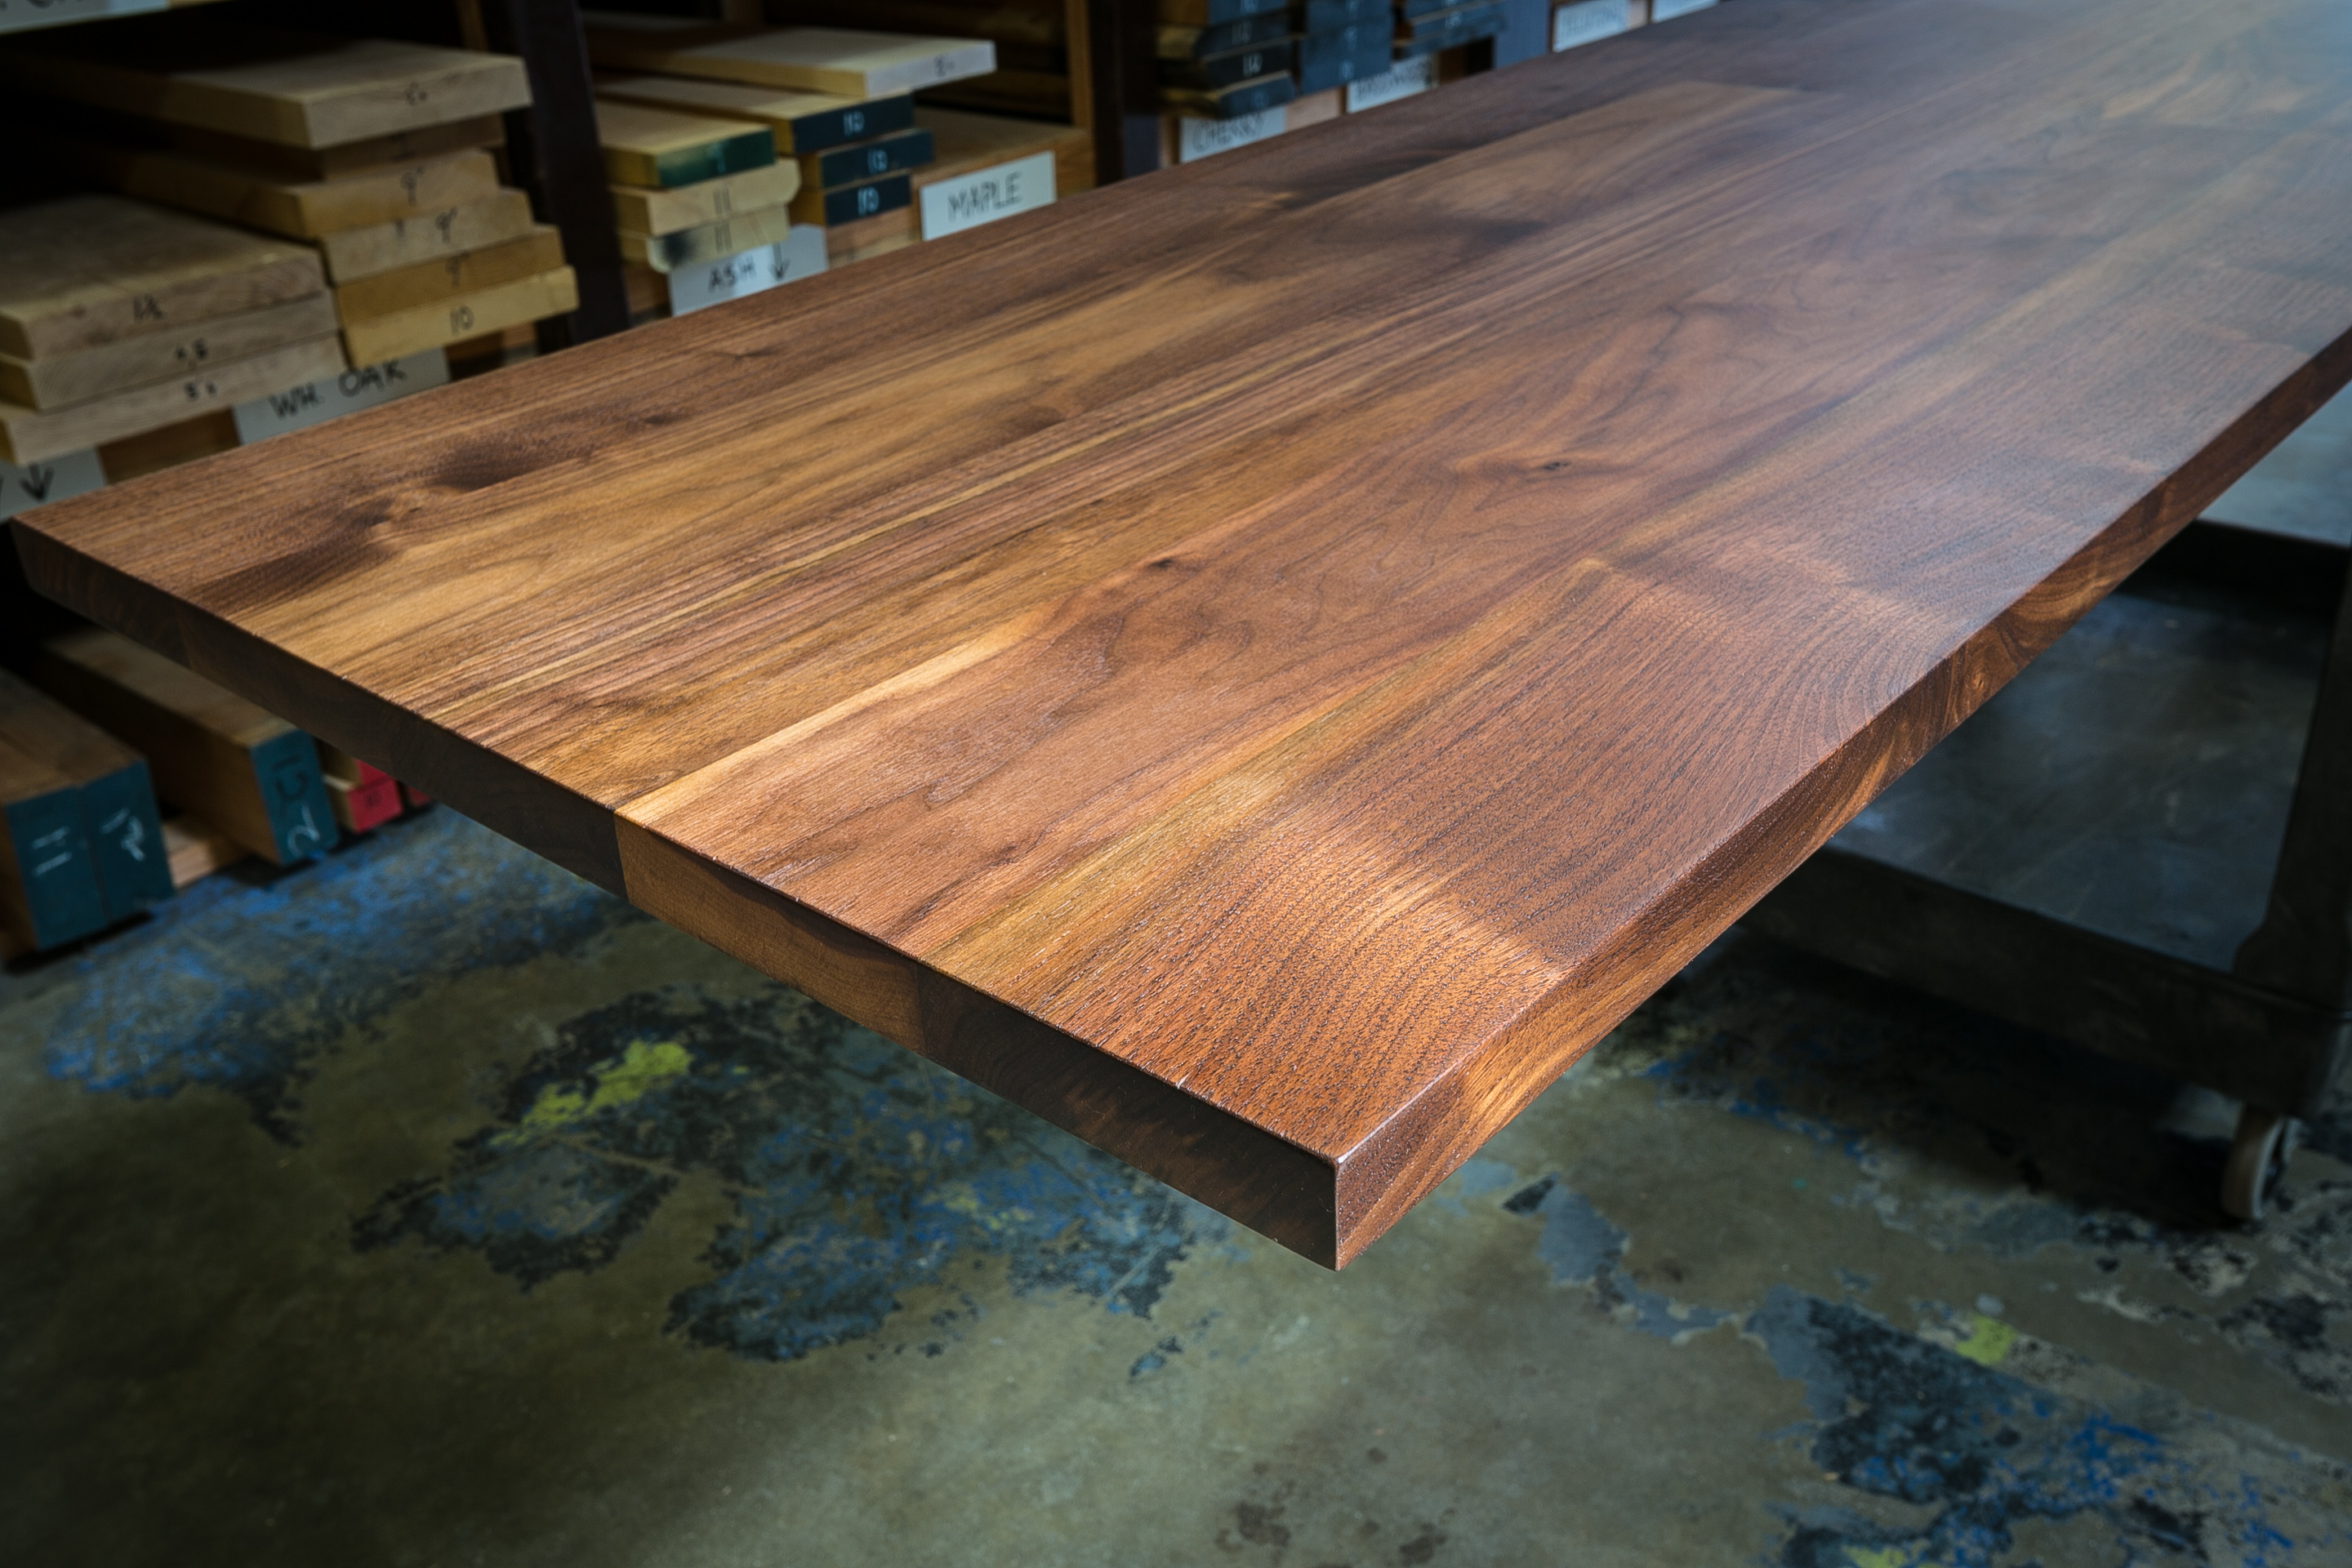 Wooden Table Top Ideas Wooden Table Top House Architecture Design